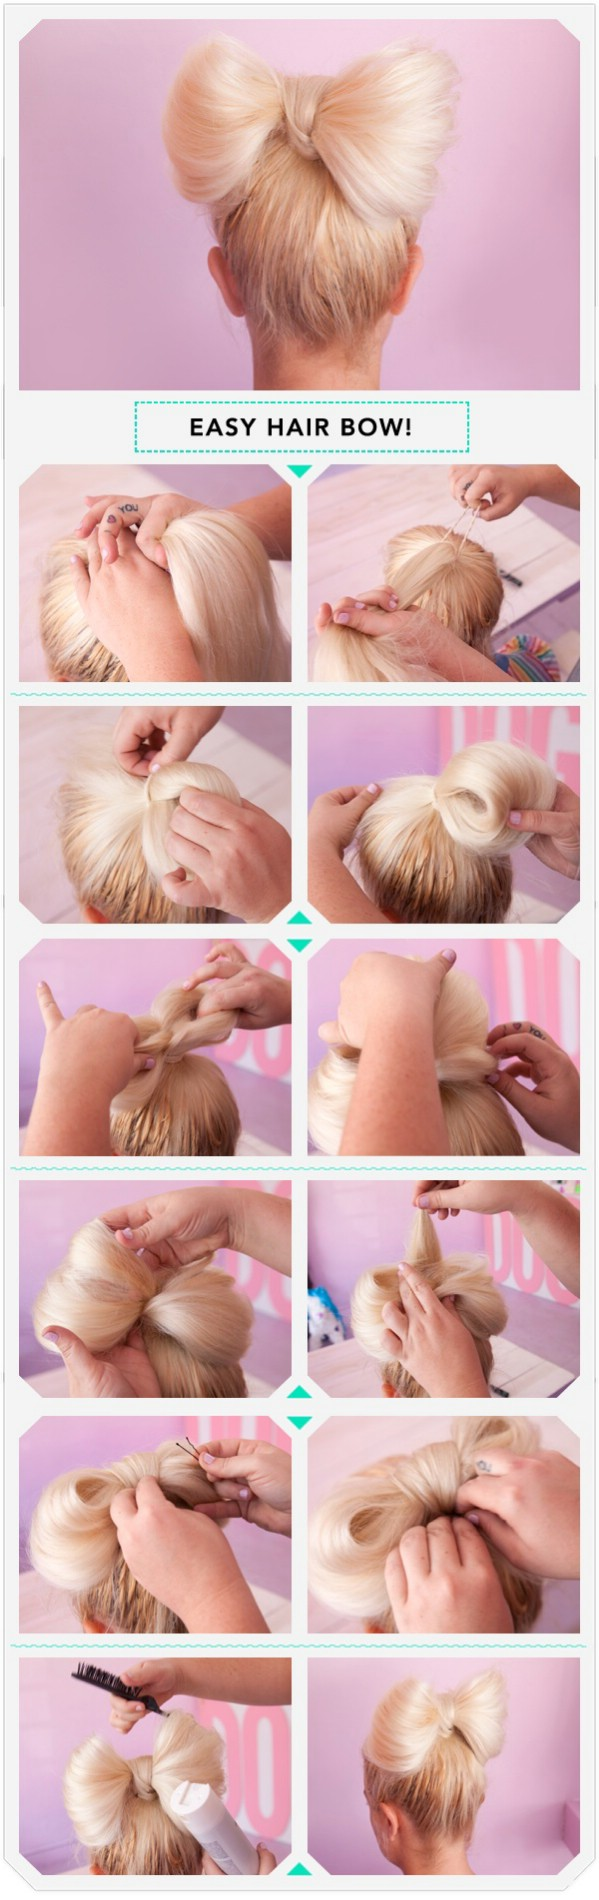 Step by step hair bow creating process